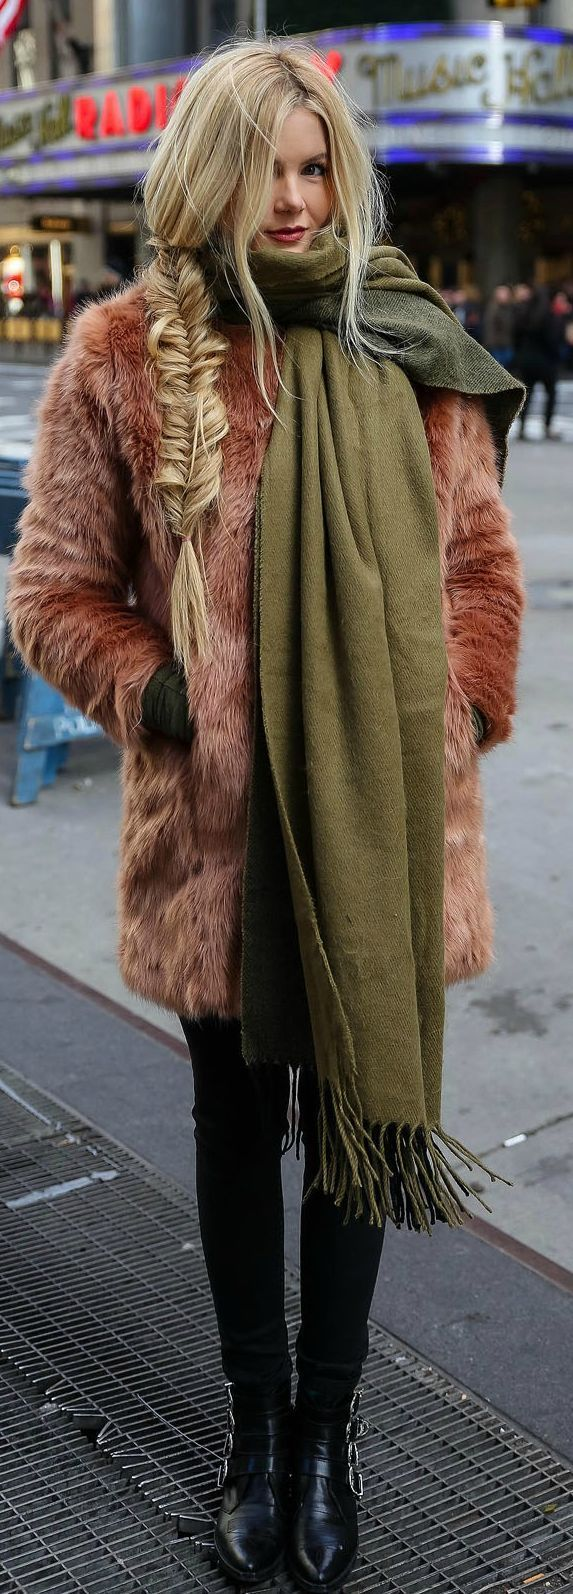 Olive Green Oversize Scarf, blush faux fur coat